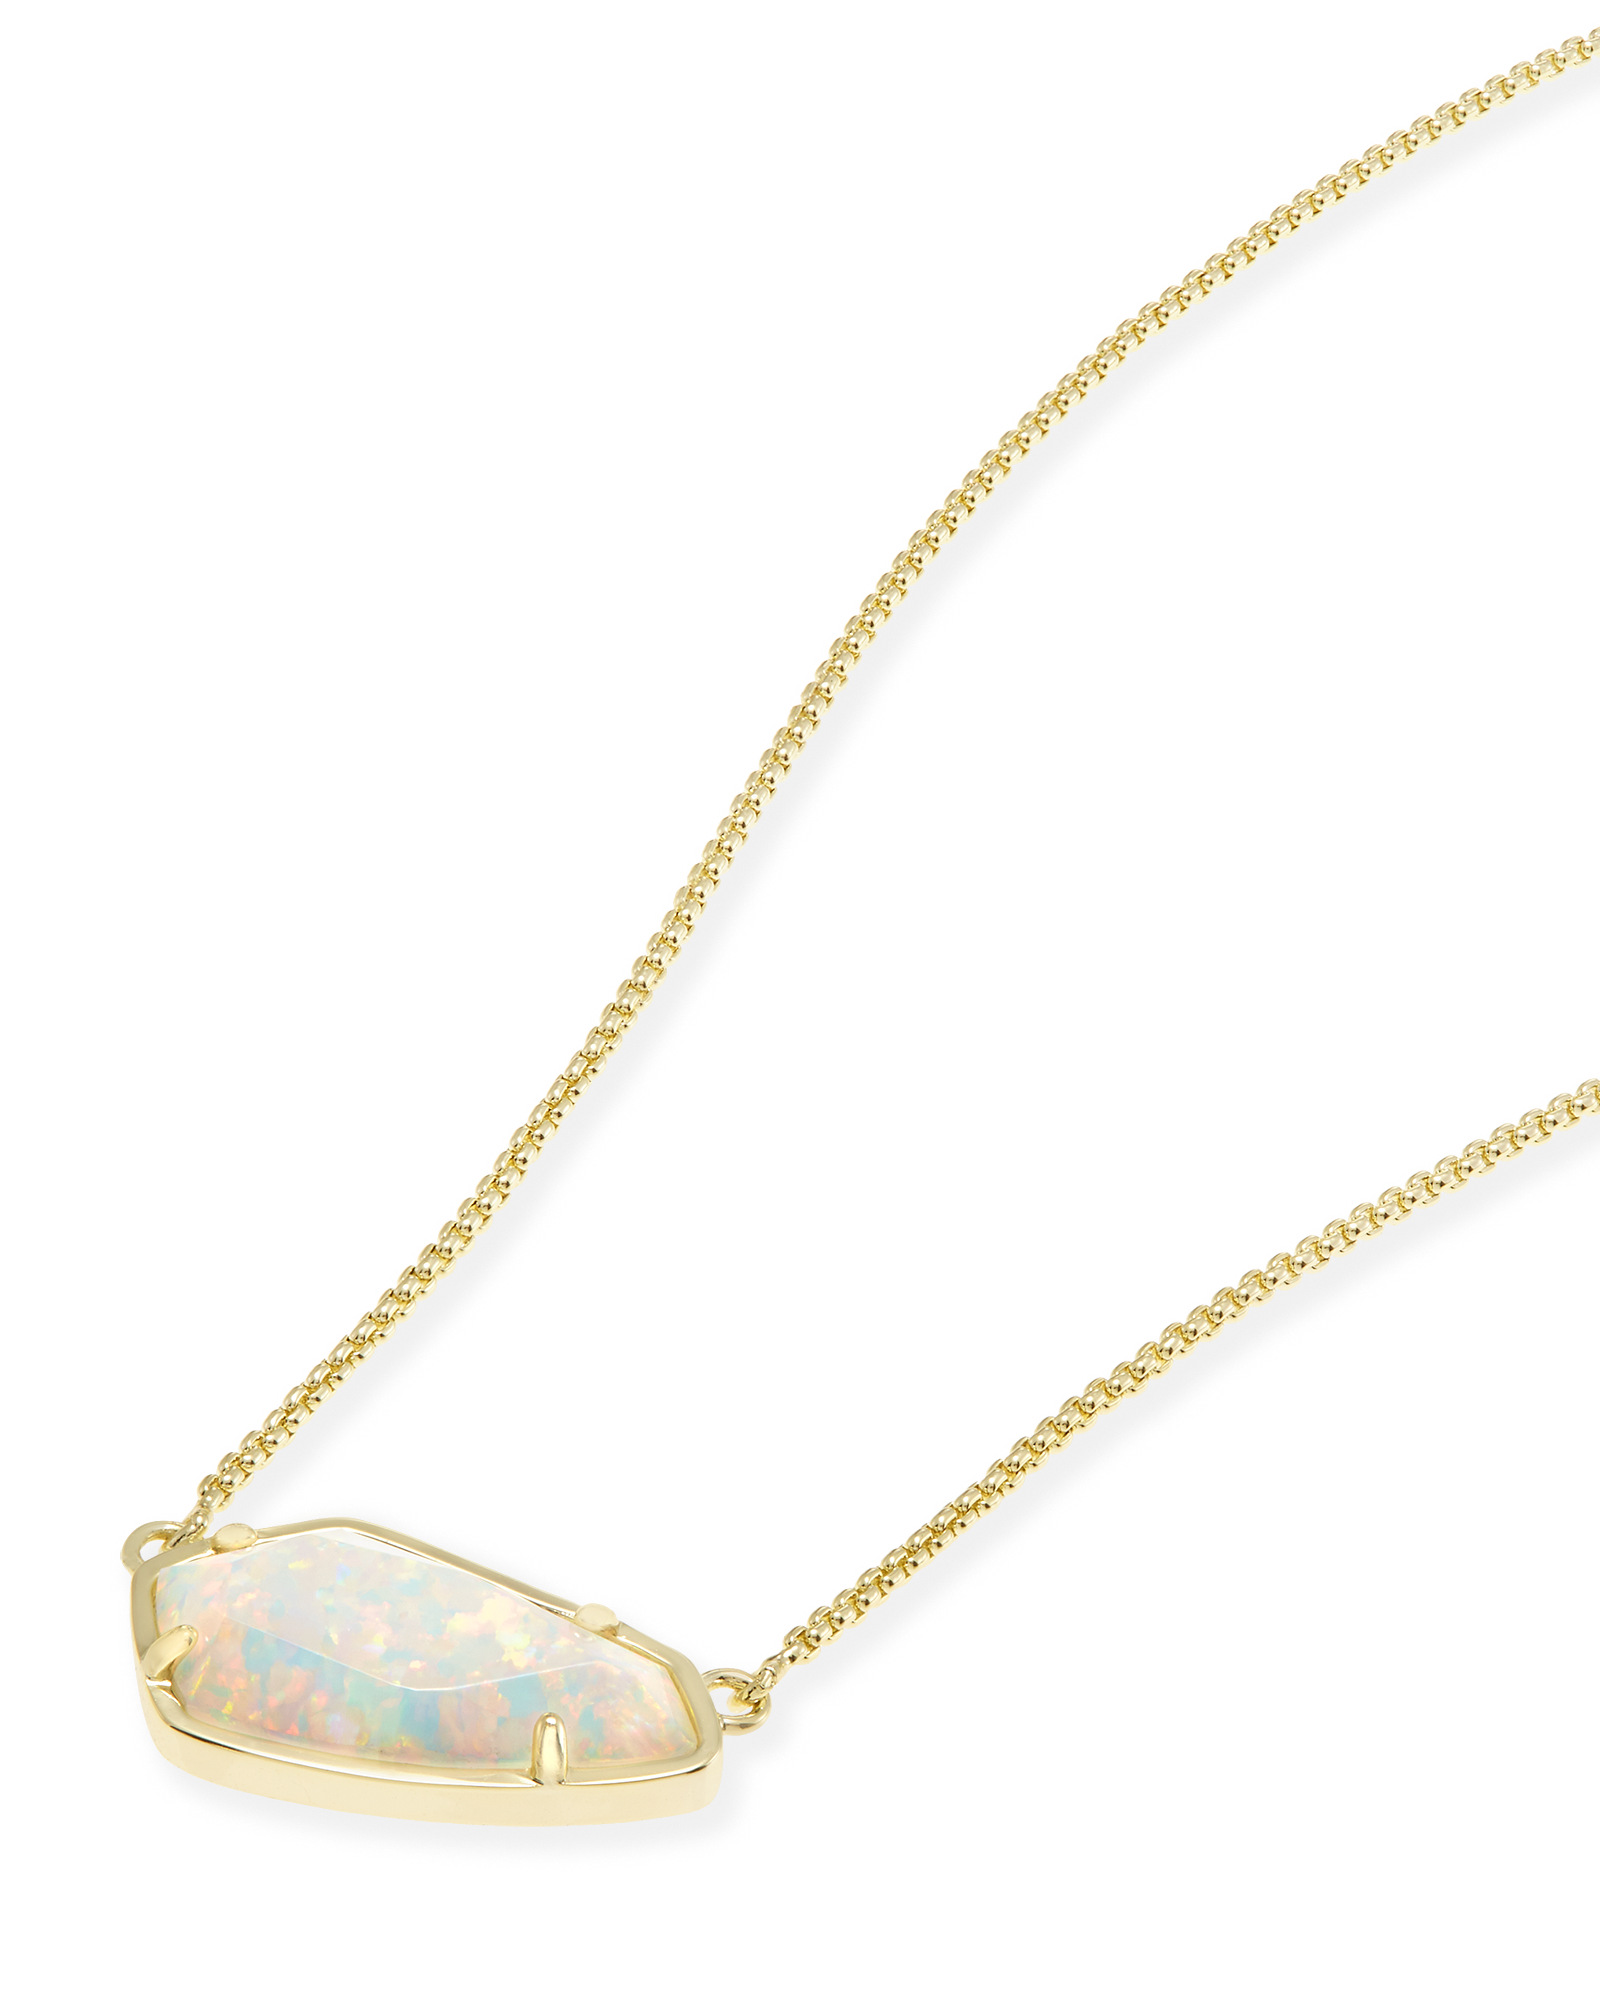 Cami Pendant Necklace in Gold